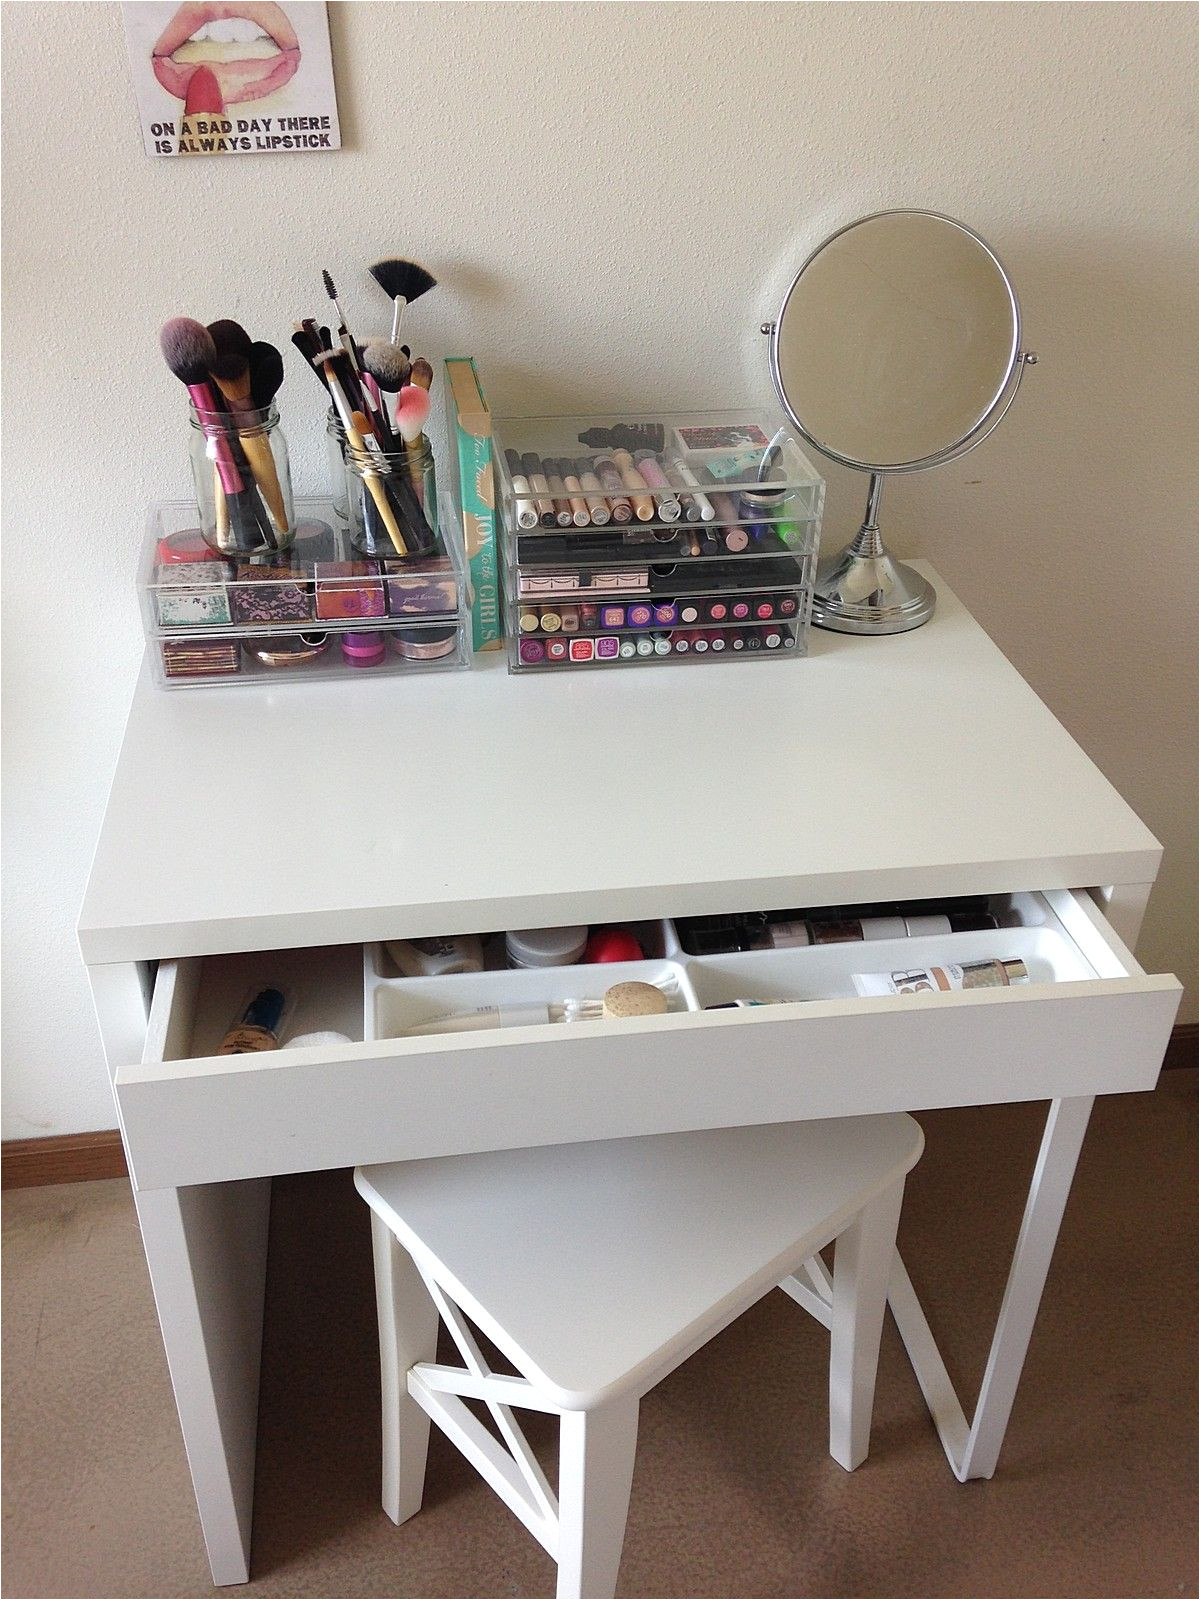 everyday makeup organization ikea micke desk ikea